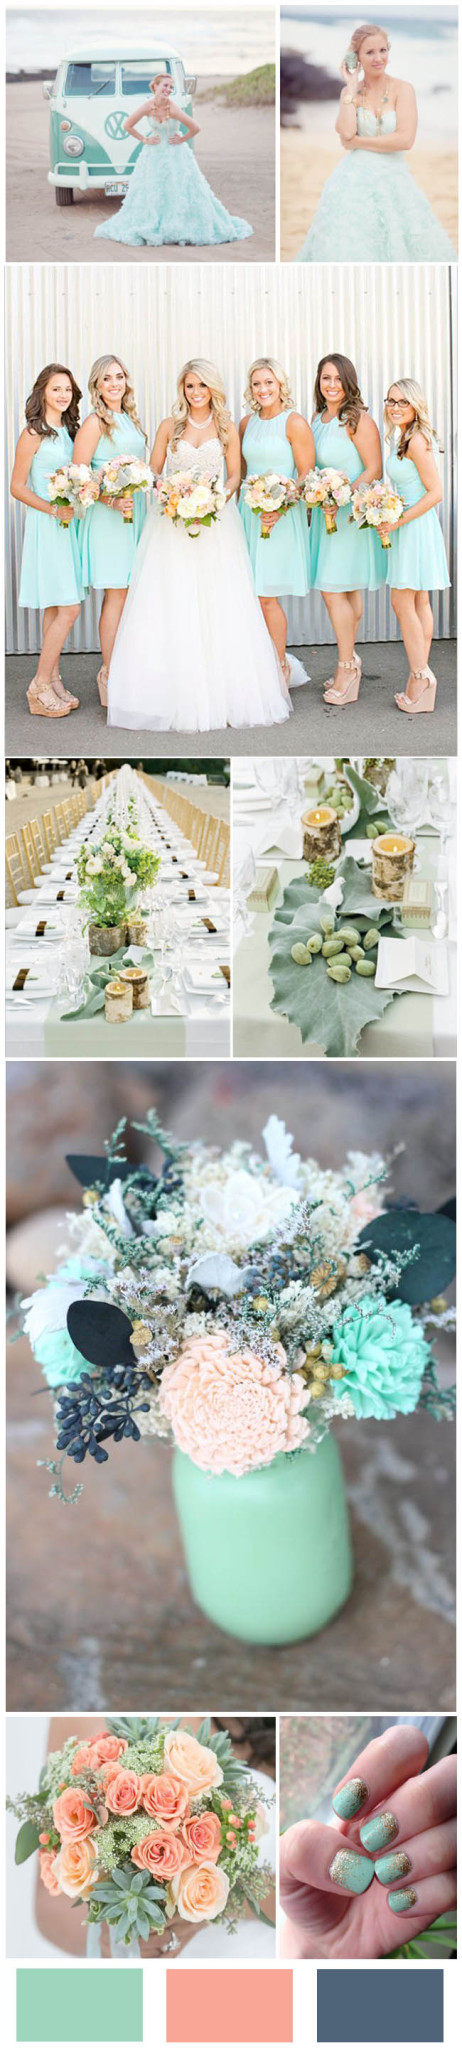 Mint Wedding Color Ideas For the Bride to Be